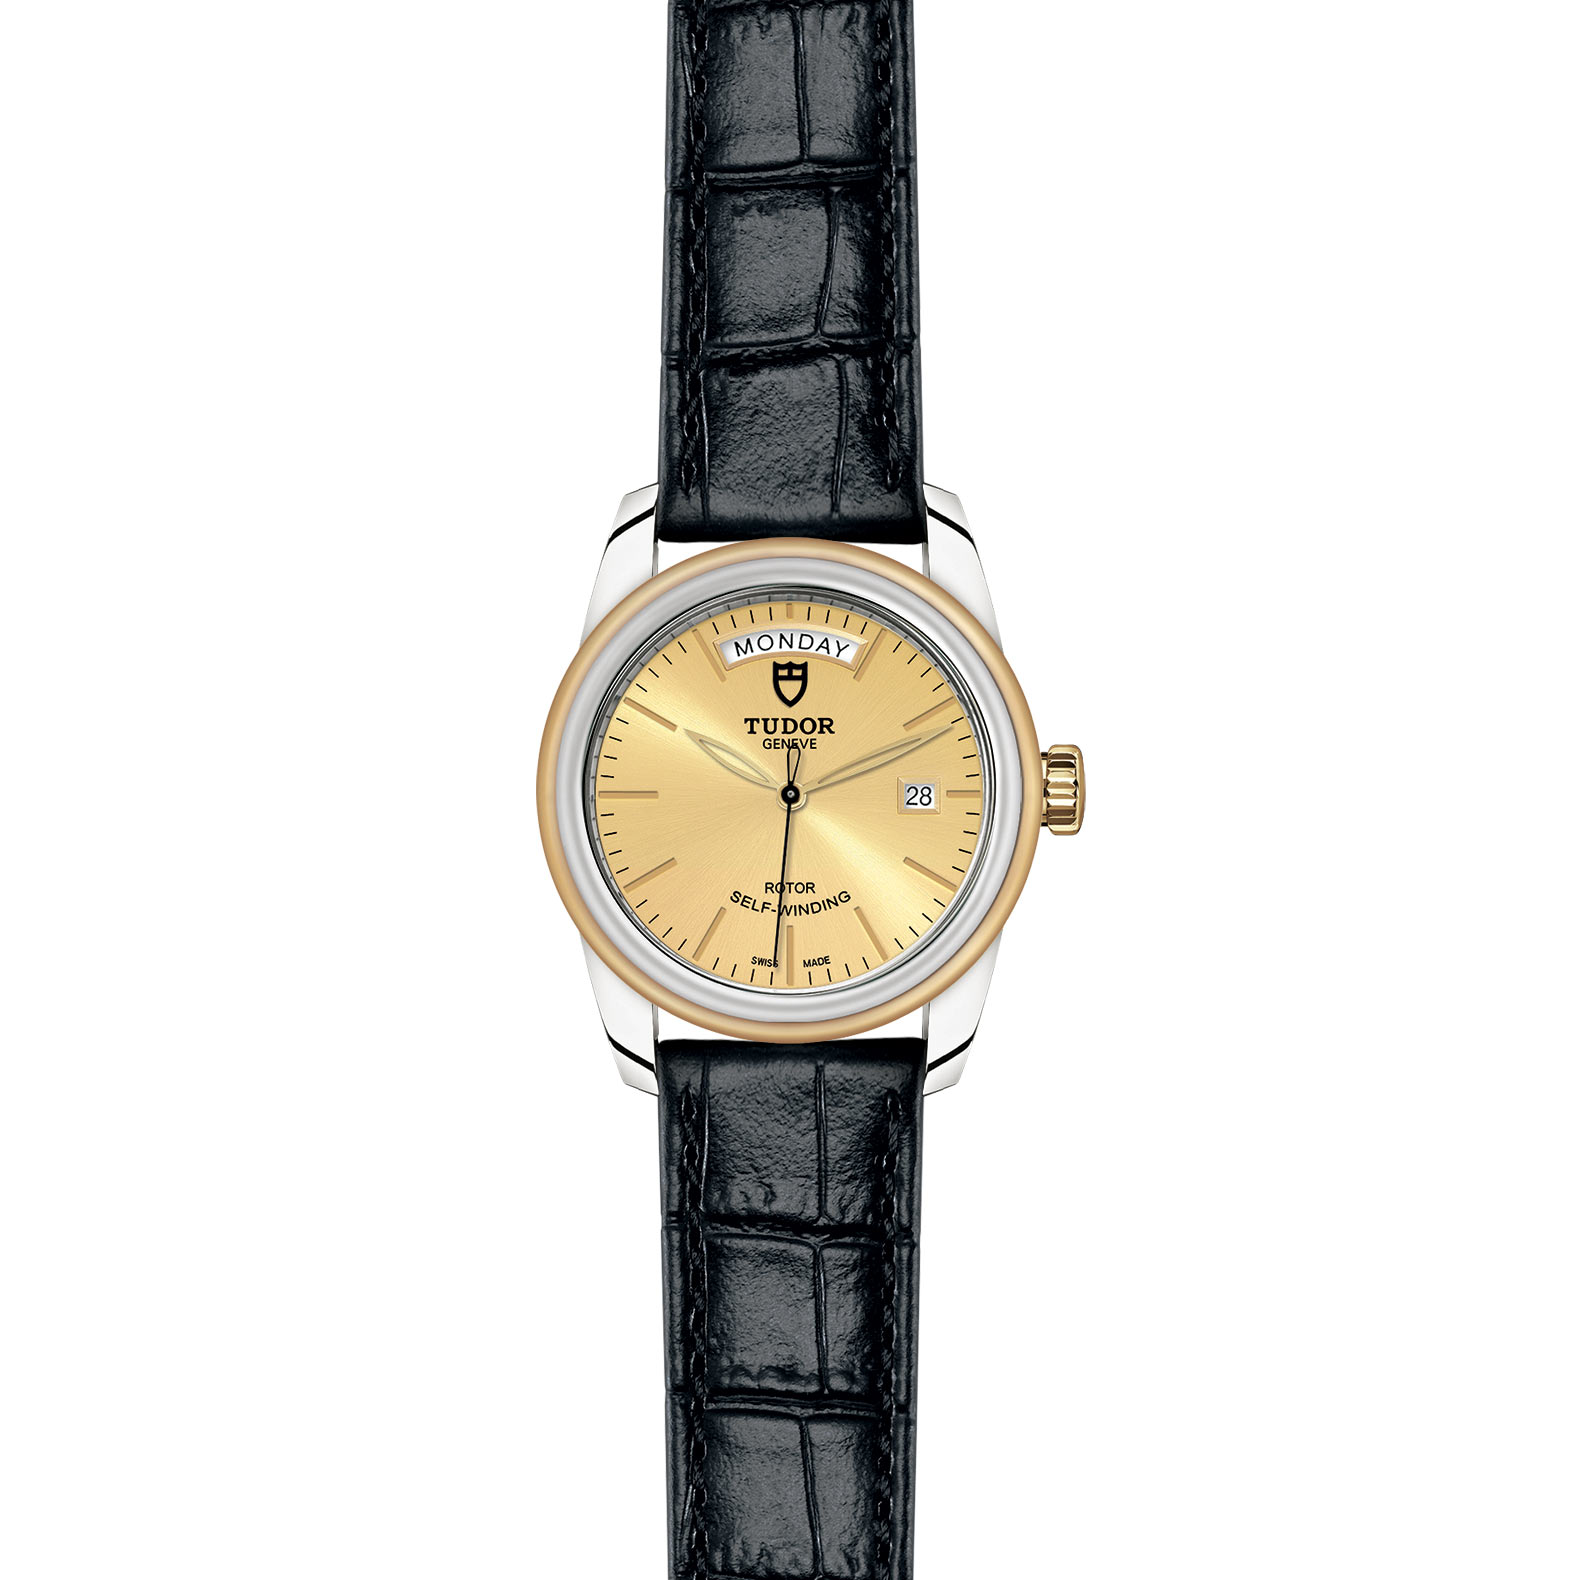 TUDOR Glamour Date Day M56003 0024 Frontfacing